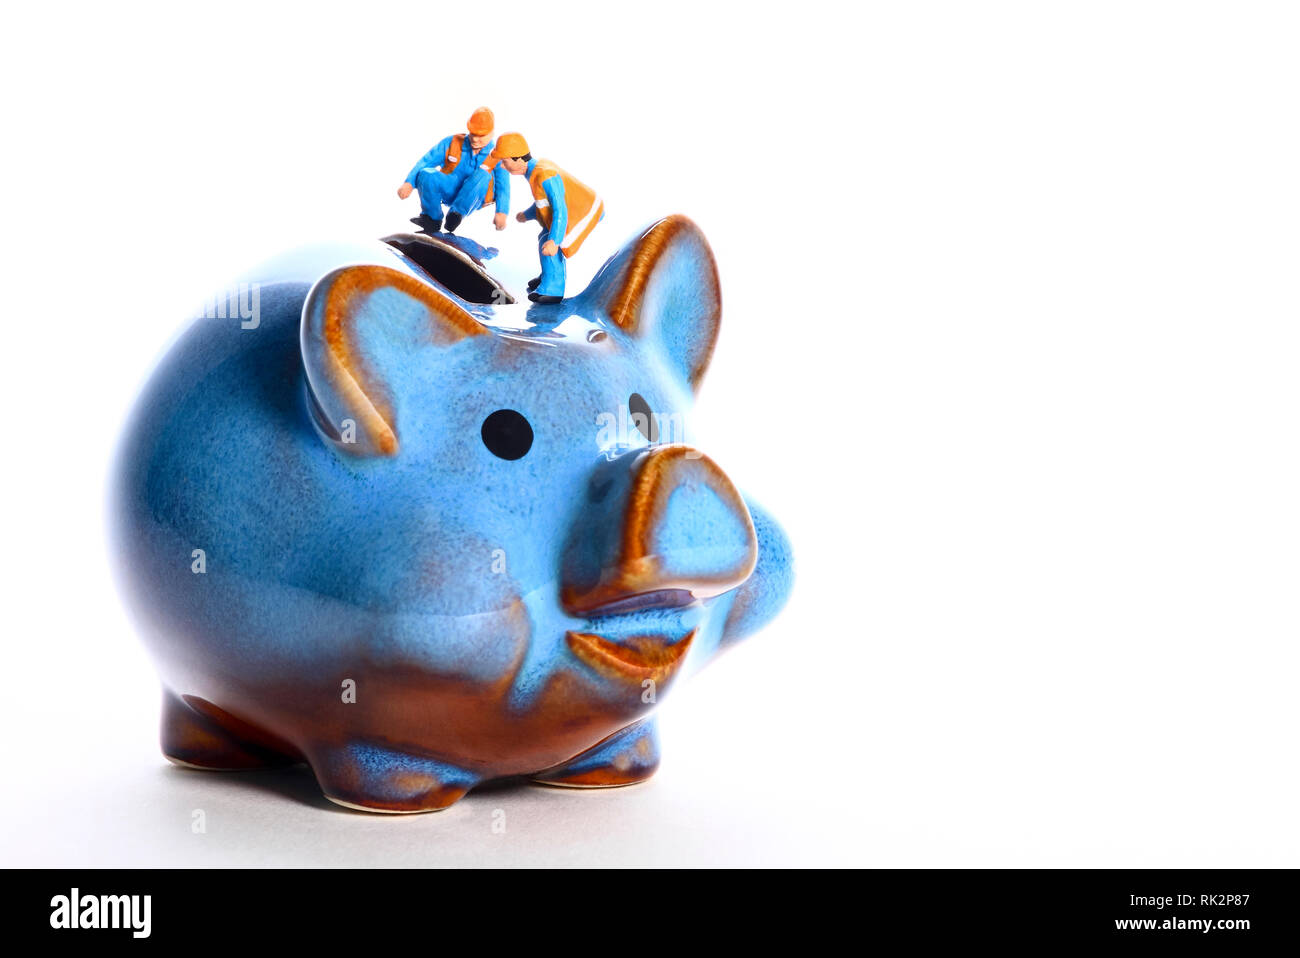 Conceptual diorama image of miniature figure workmen peering in to a piggy bank money box - Stock Image